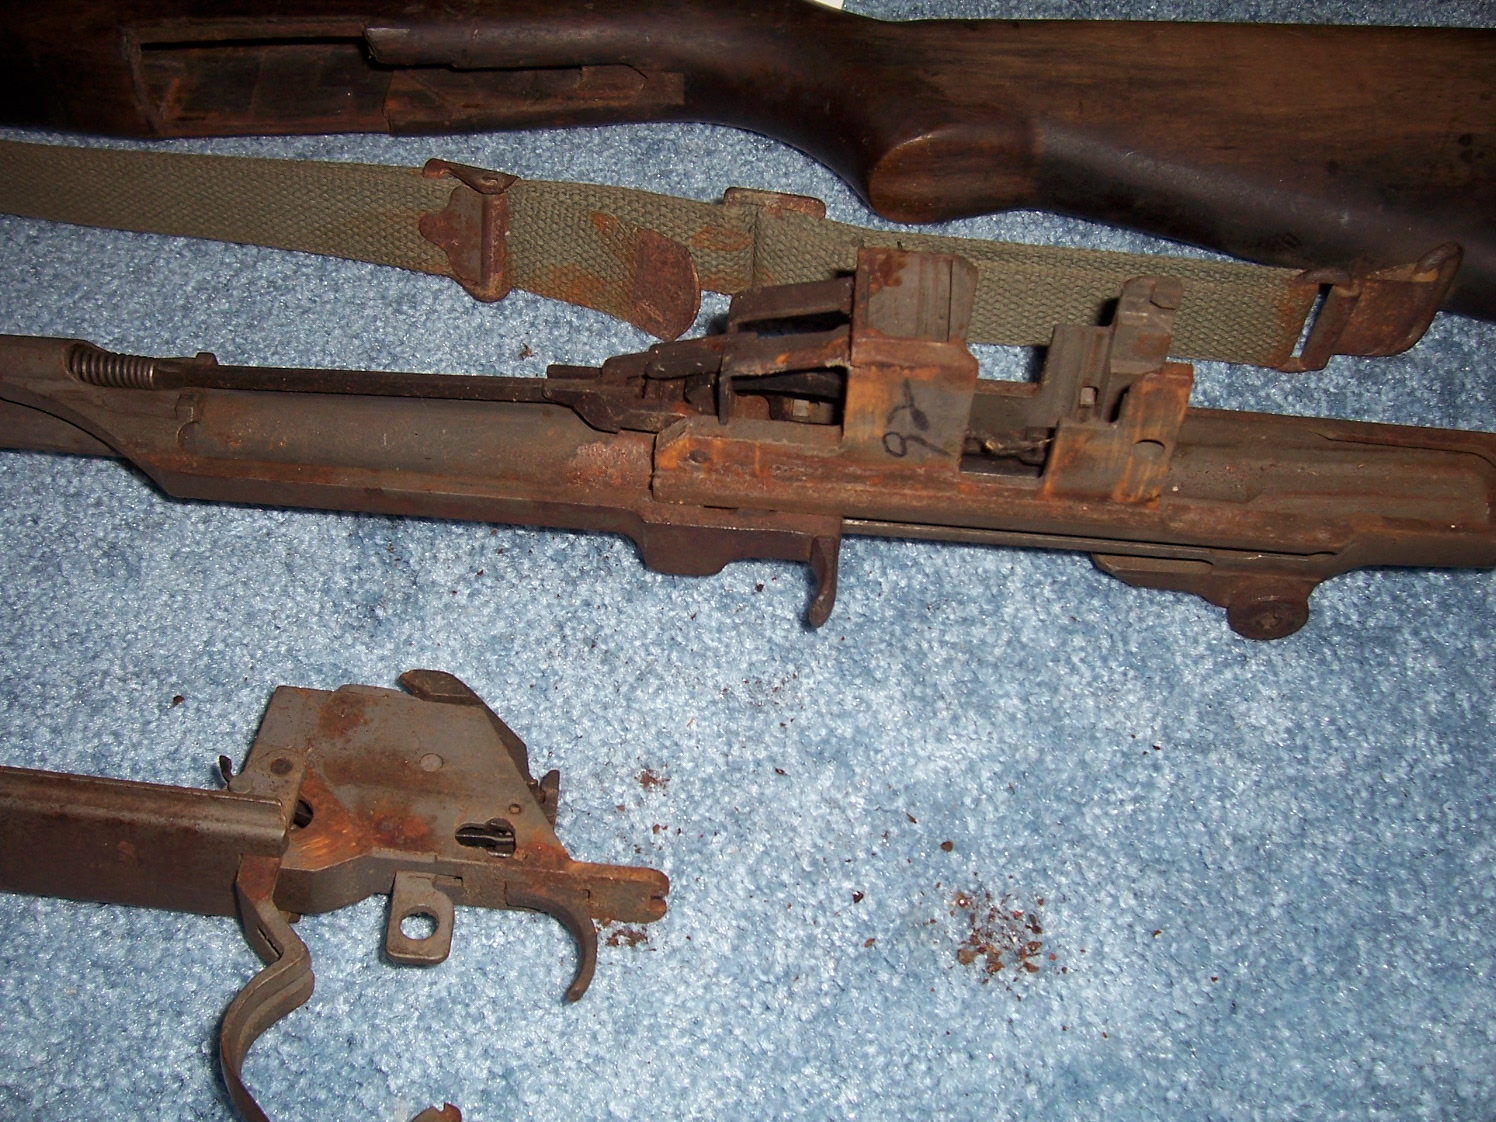 Whats the best way to take rust off M1 Garand? | Gun and